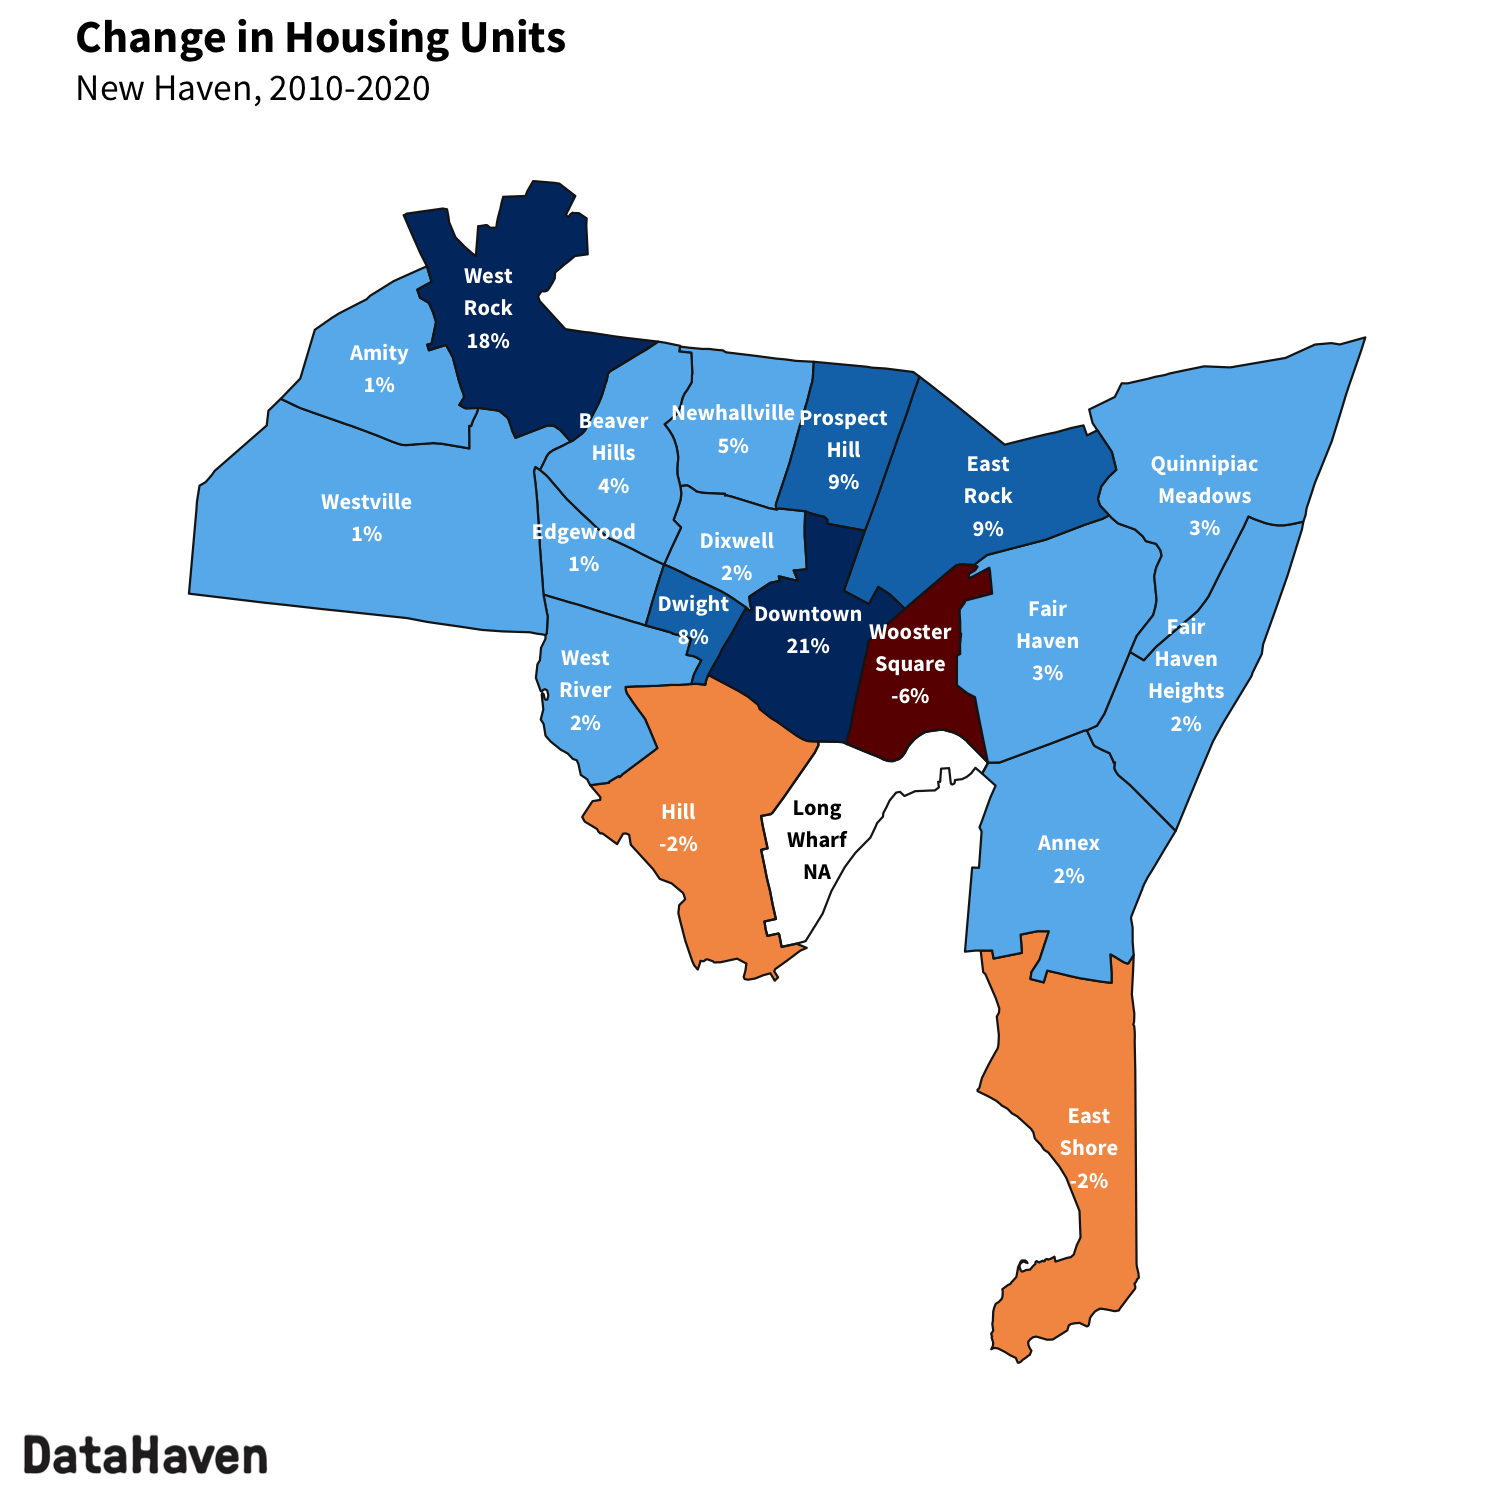 New Haven change in housing units from 2010 to 2020 Census